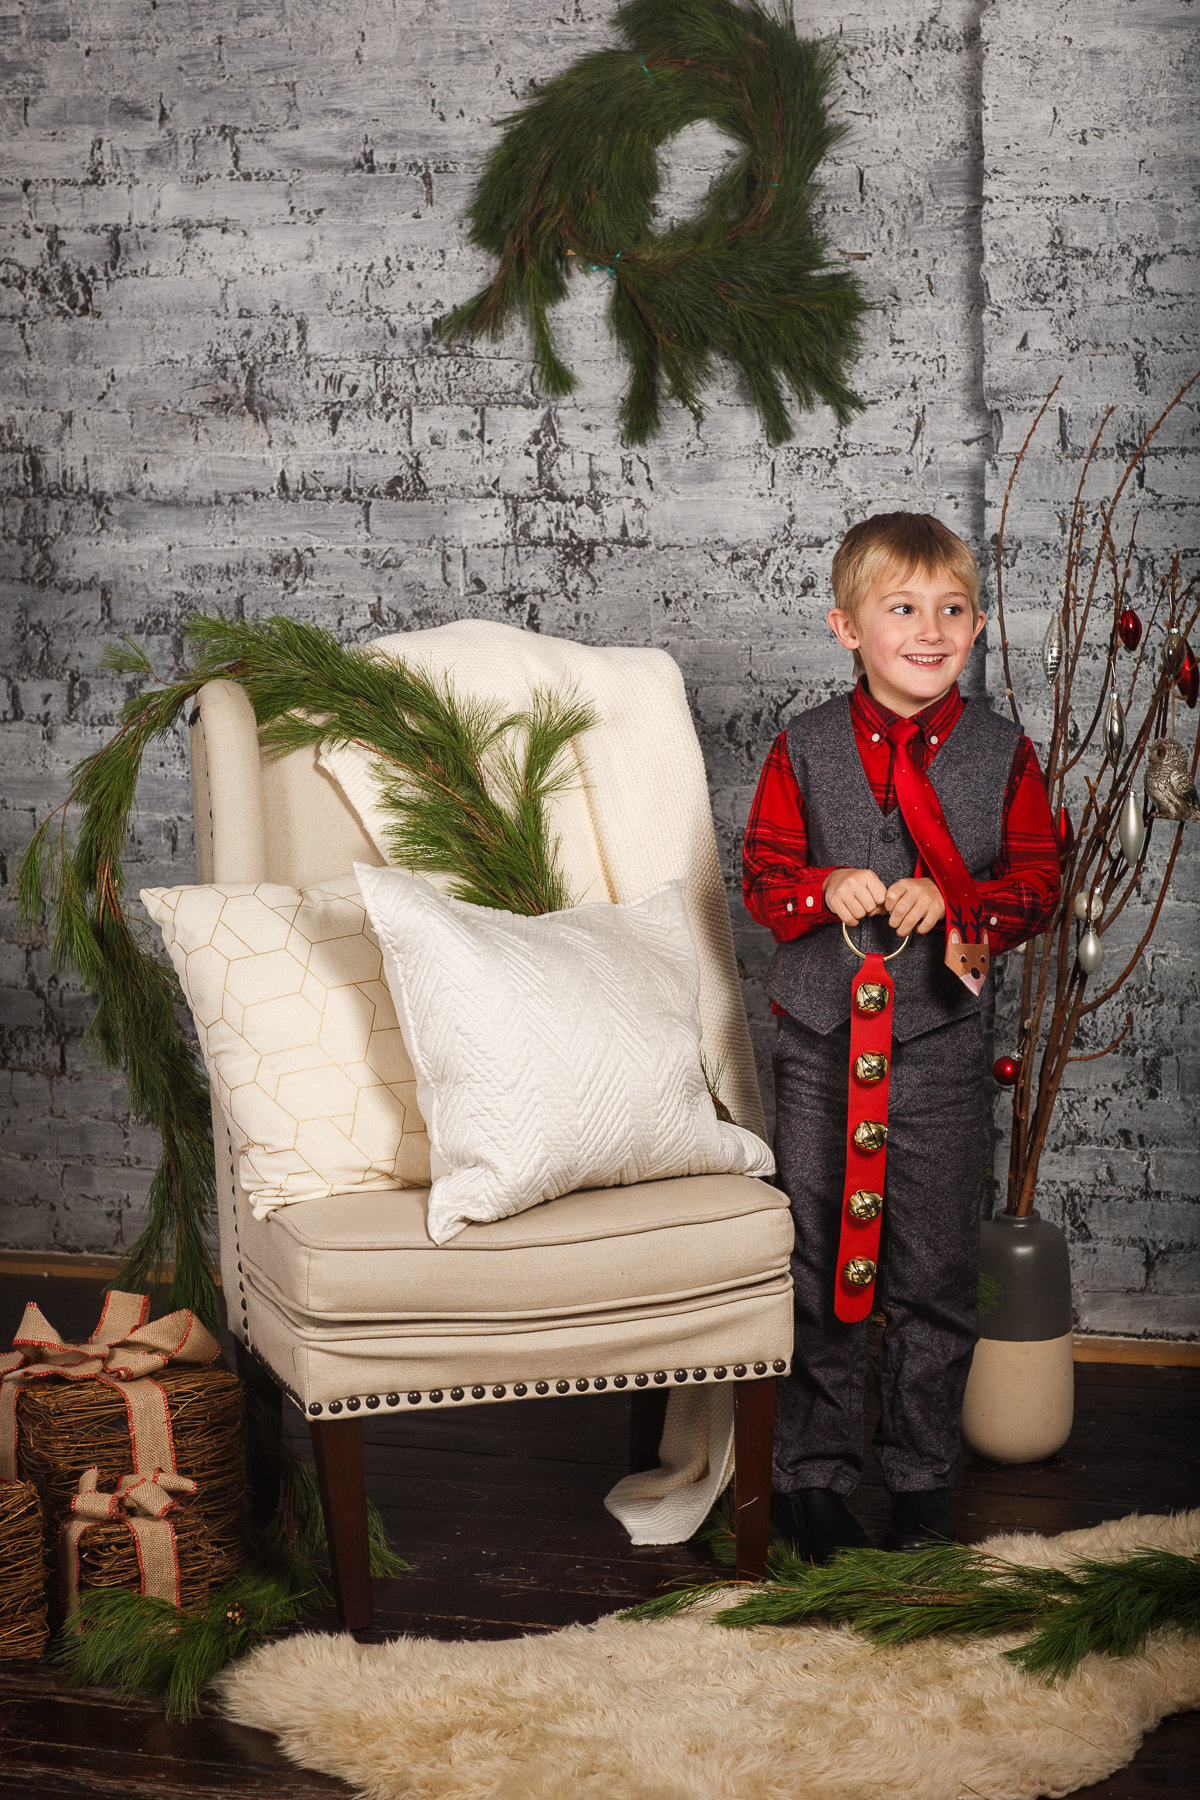 20161120_HolidayMiniSessions_Pettegrew_0009